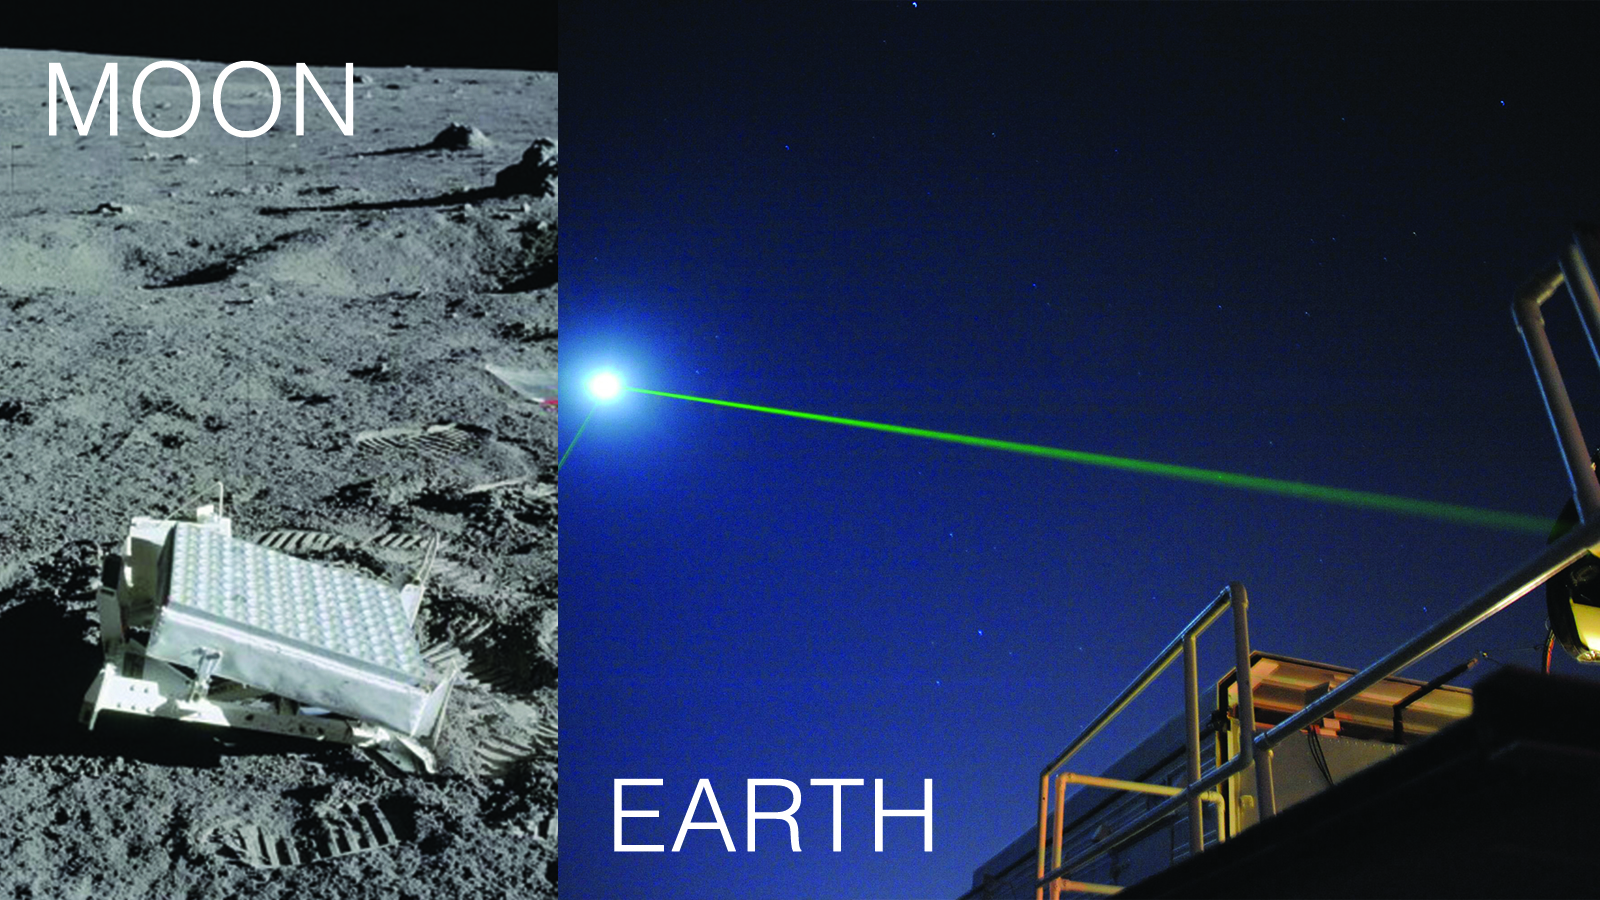 Images showing a laser being shot from an Earth observatory to a reflector on the moon